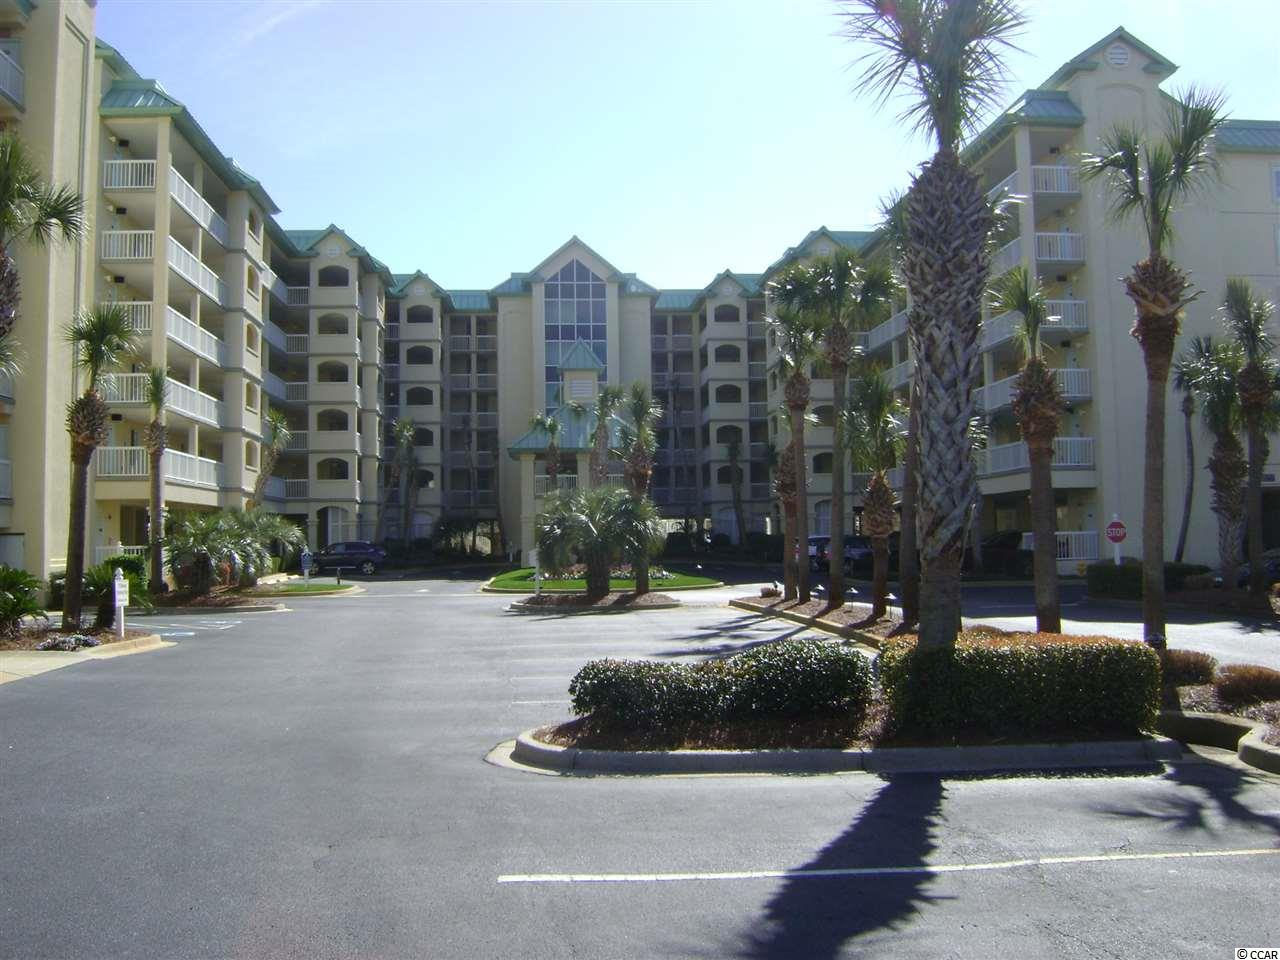 Affordable oceanfront,  four week interval ownership oceanfront in the exclusive Litchfield By The Sea Resort. Top floor location/four bedroom. Owner enjoys amenities which include pools, tennis courts, oceanfront beach clubhouse and fishing/crabbing docks.